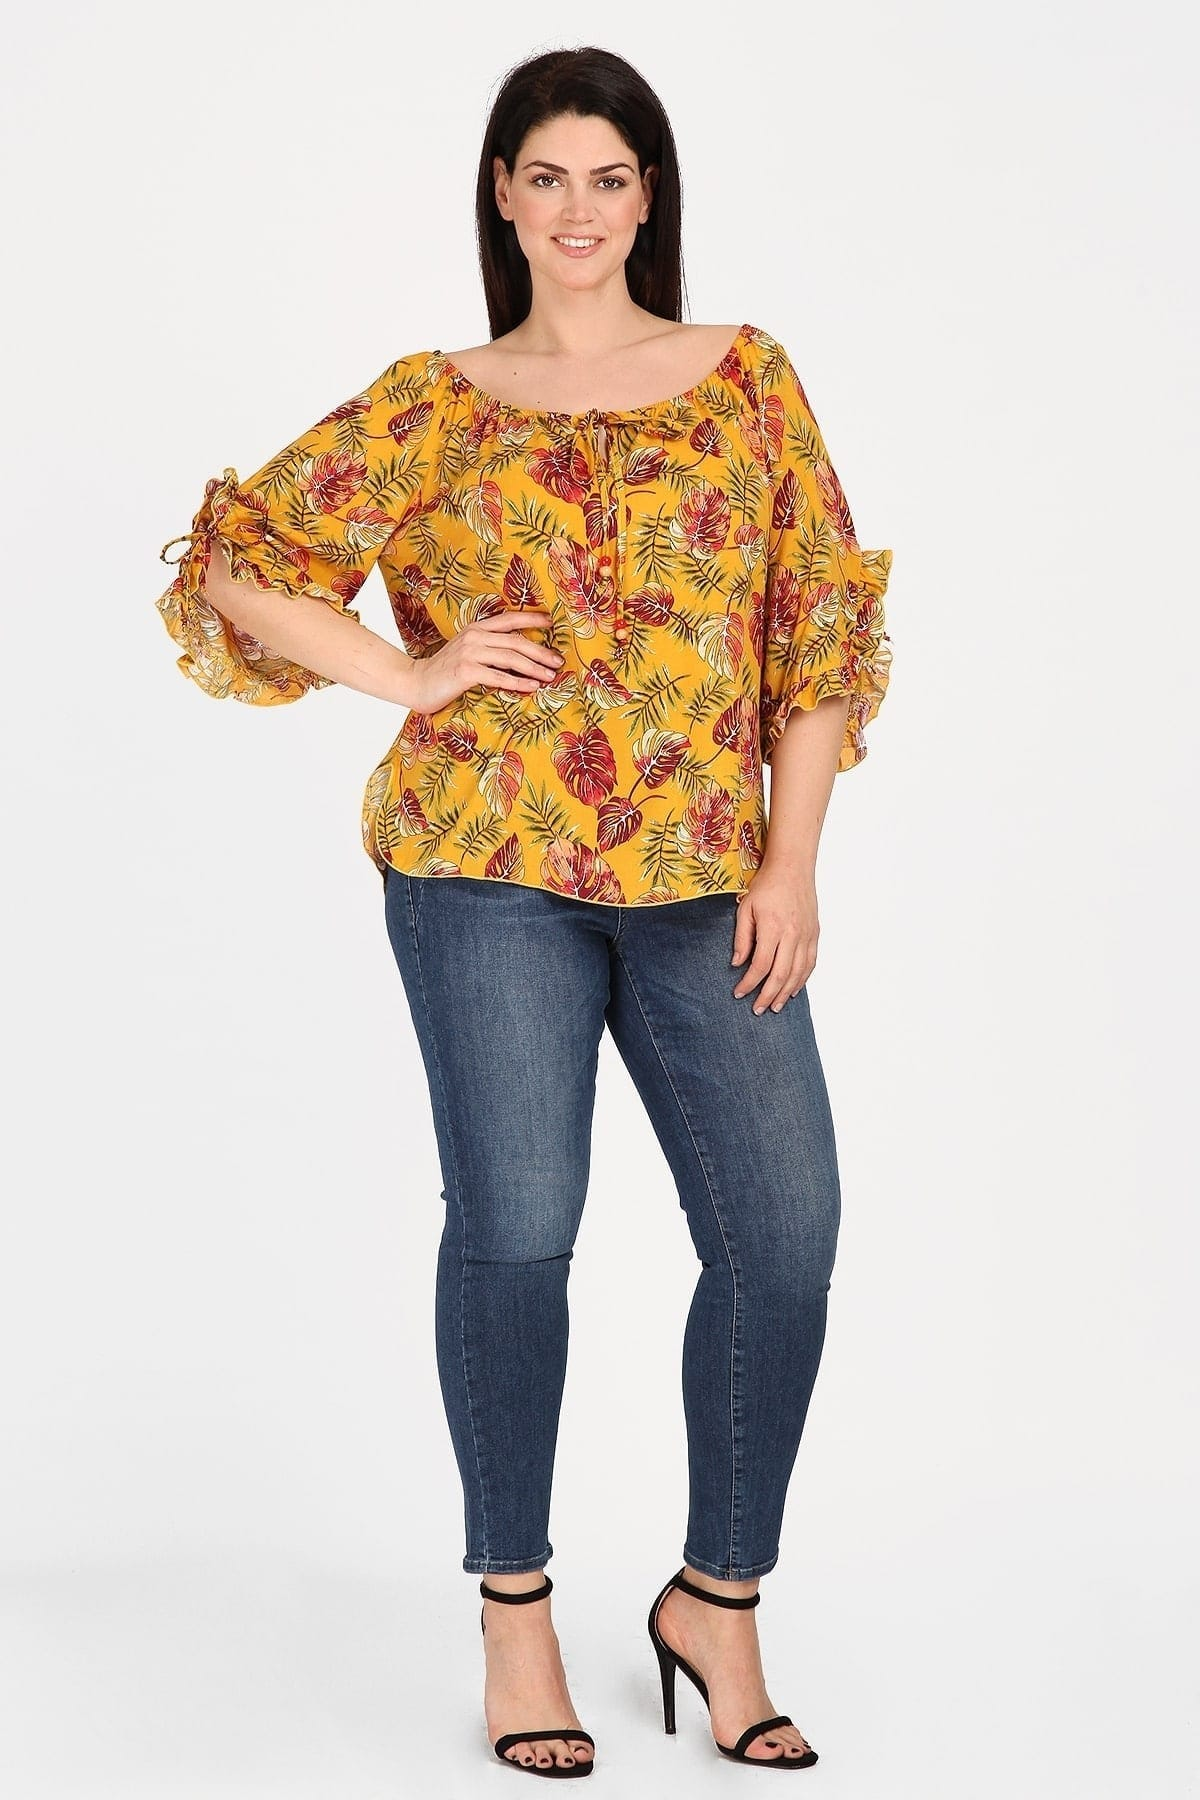 Floral blouse with beads